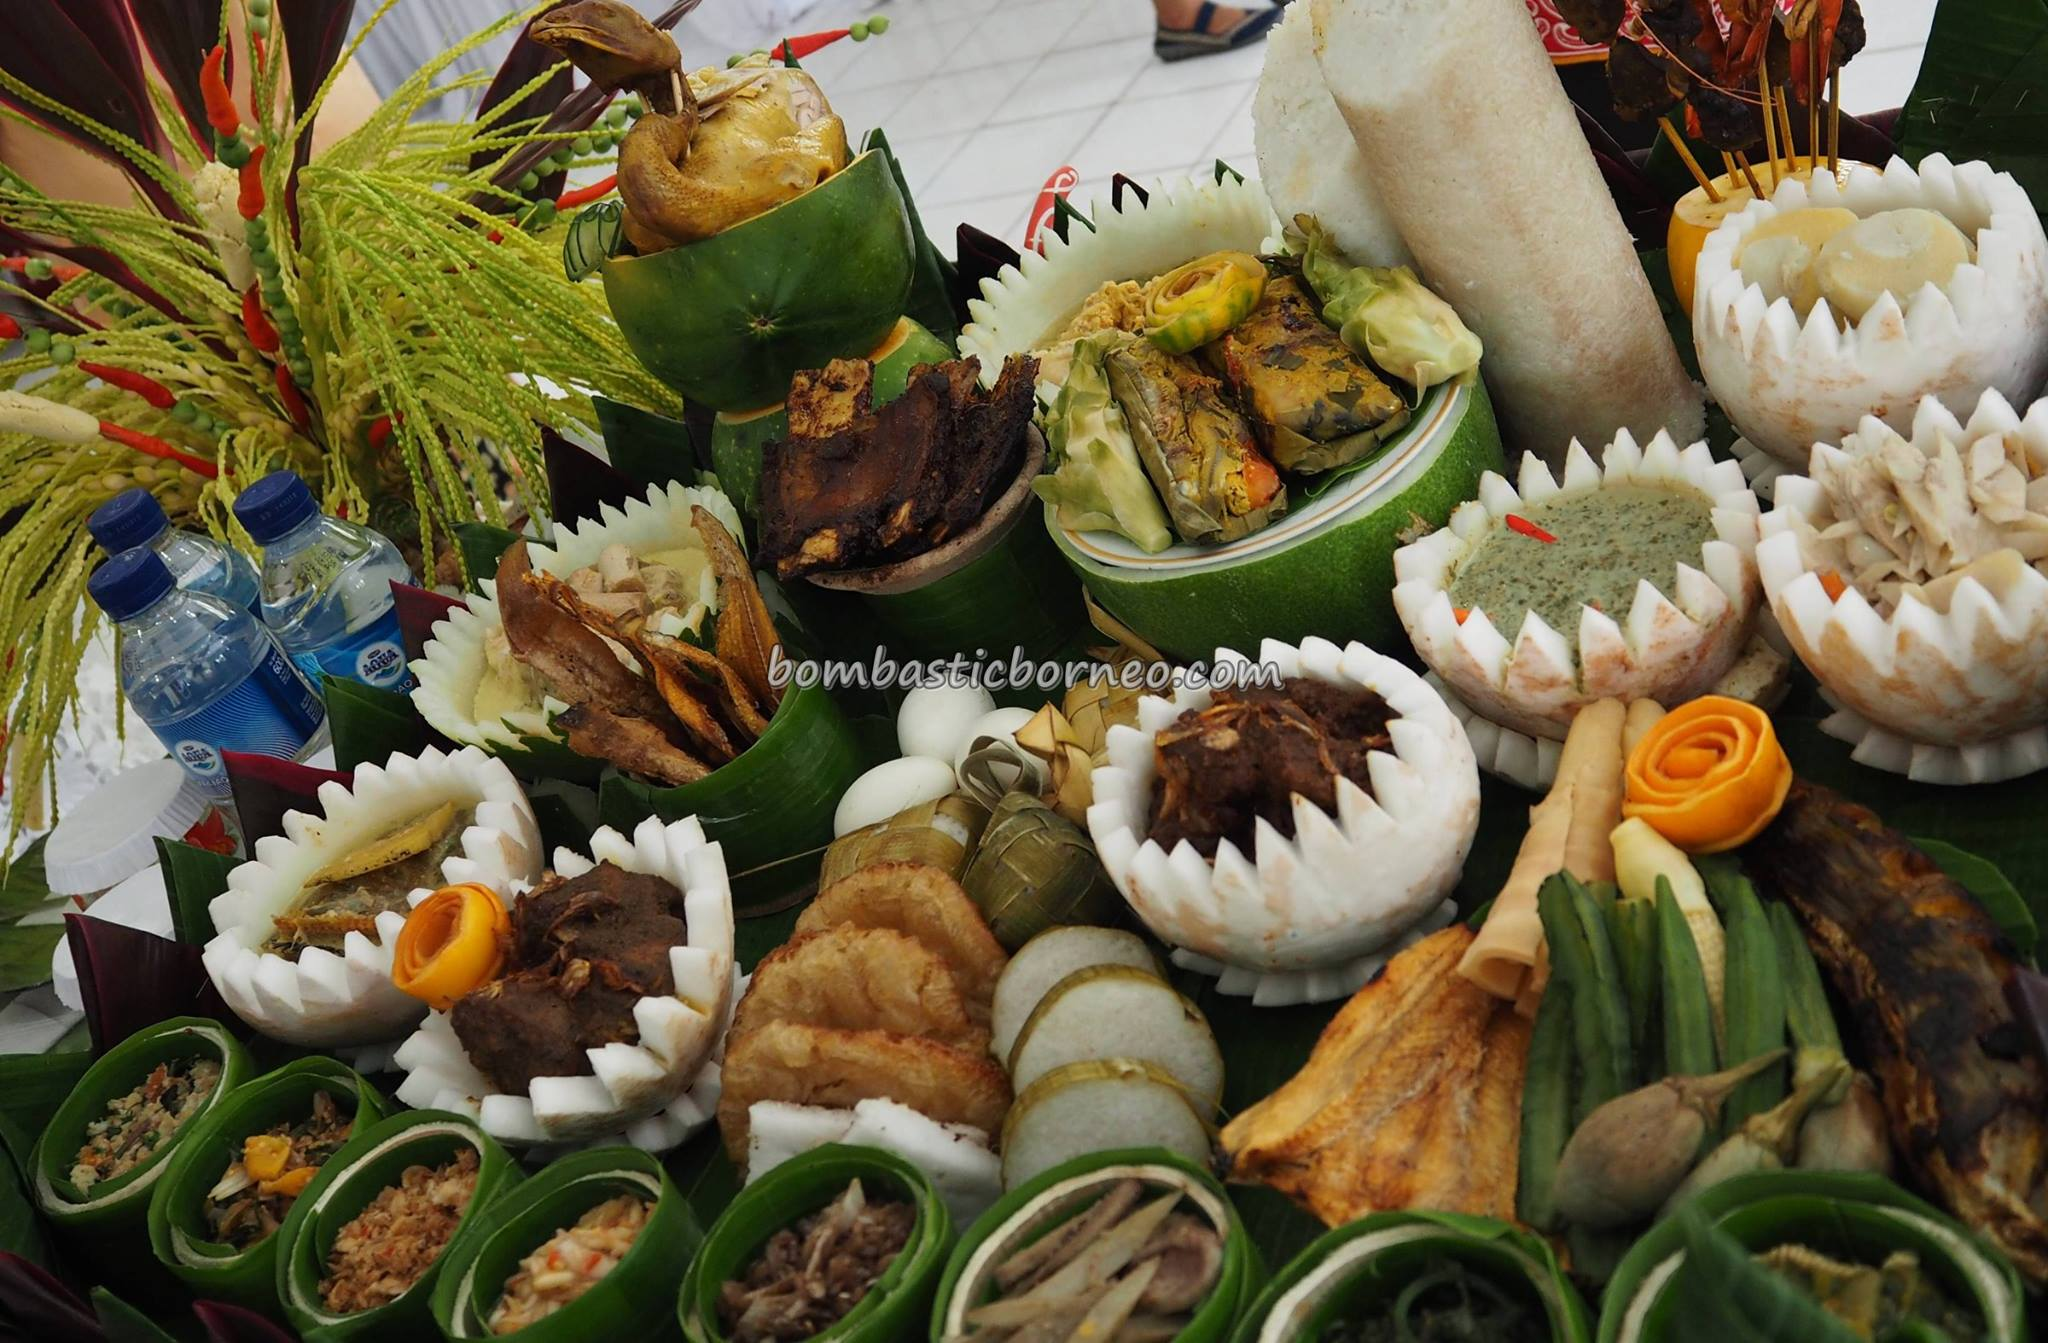 Lomba Memasak, exotic delicacy, authentic, Indigenous, Kalimantan Tengah, Borneo, Indonesia, native, suku dayak, event, Obyek wisata, tourism, traditional, tribal, Food decoration, tribe,